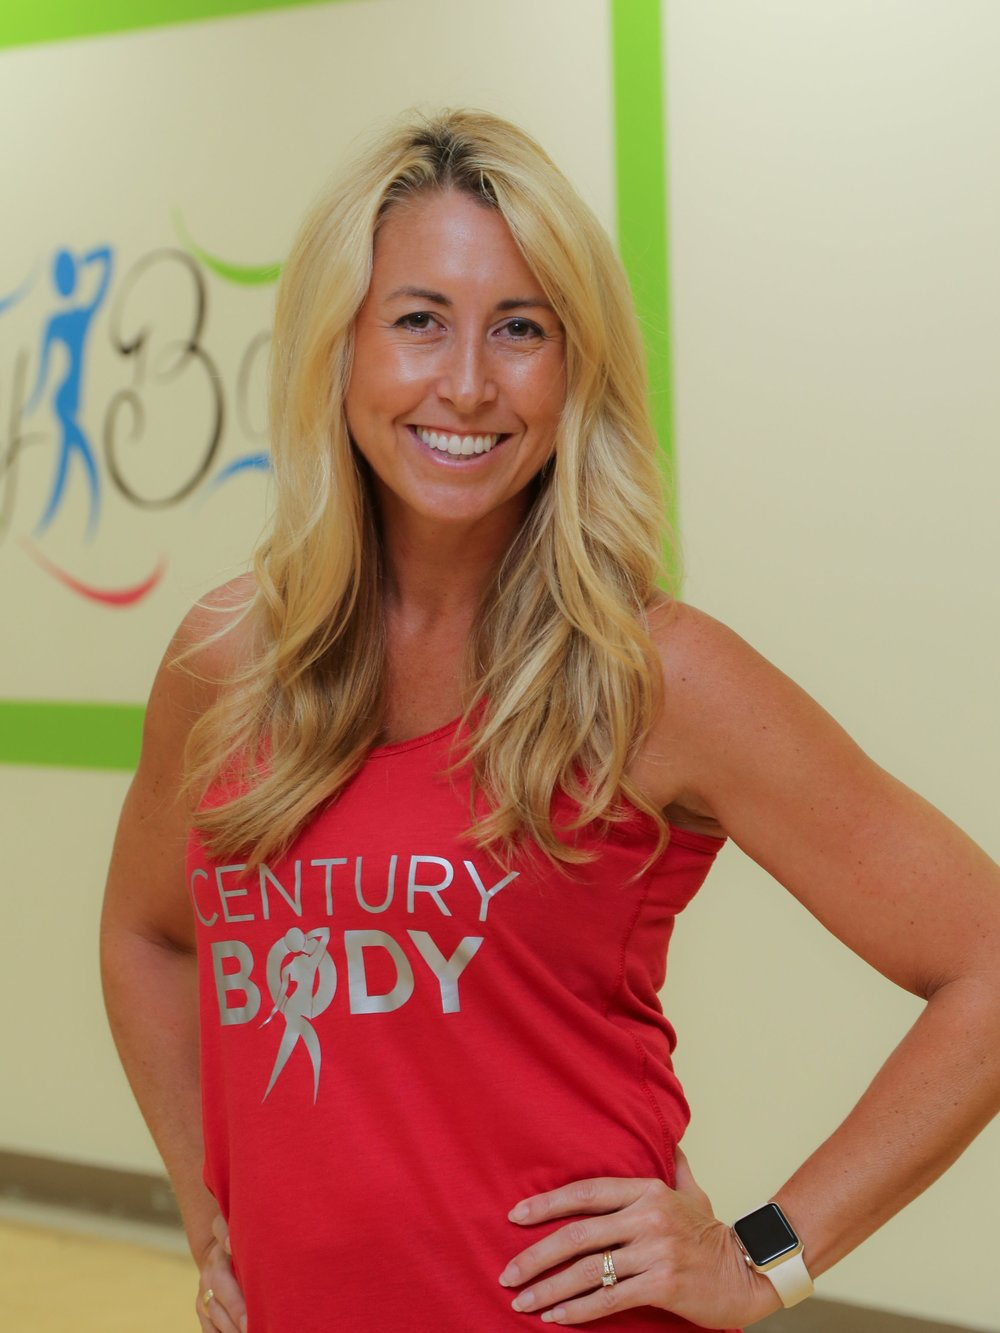 Pamela Lombardo   I first came to Century Body as a student in 2012, then joined the crew as an instructor two years later. I love that Zumba® Fitness doesn't feel like a workout. For one hour, we forget about the stress in our daily lives and lose ourselves in the class. I know I've done my job as an instructor when I see students' joy for Zumba® Fitness and they leave class with a great caloric burn and smiles on their faces. Ultimately, it's all about being happy together, amirite? I typically sub for other instructors or pop in their classes during the week. Hope to see you soon!